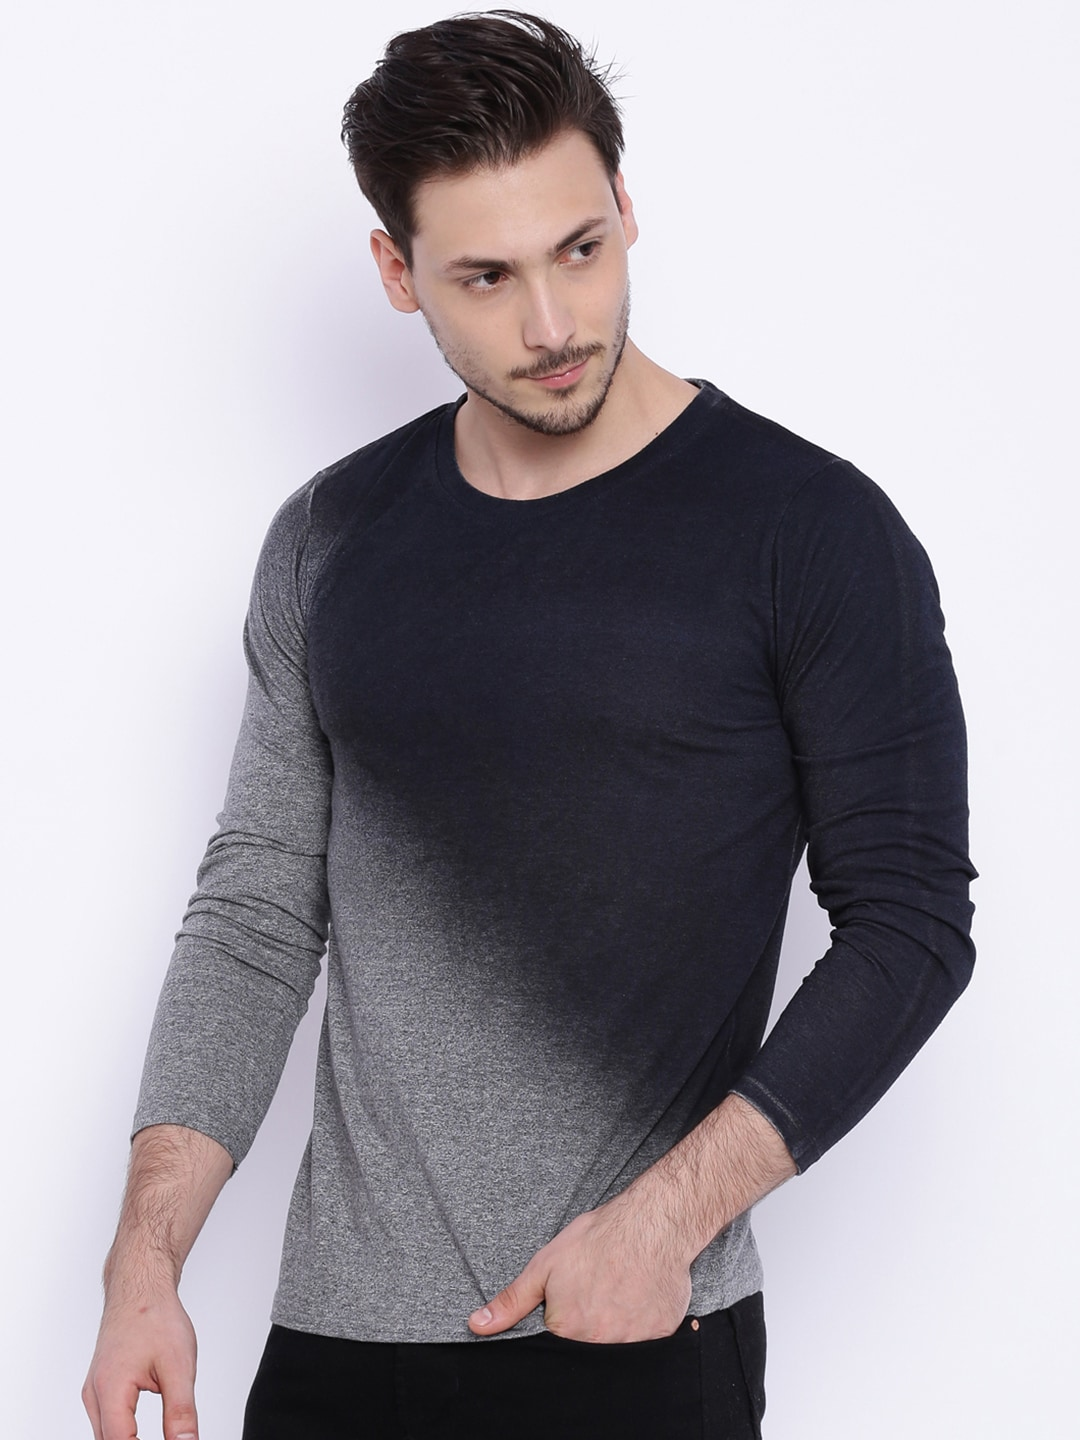 T Short Long Sleeve T Shirts For Men Online Artee Shirt